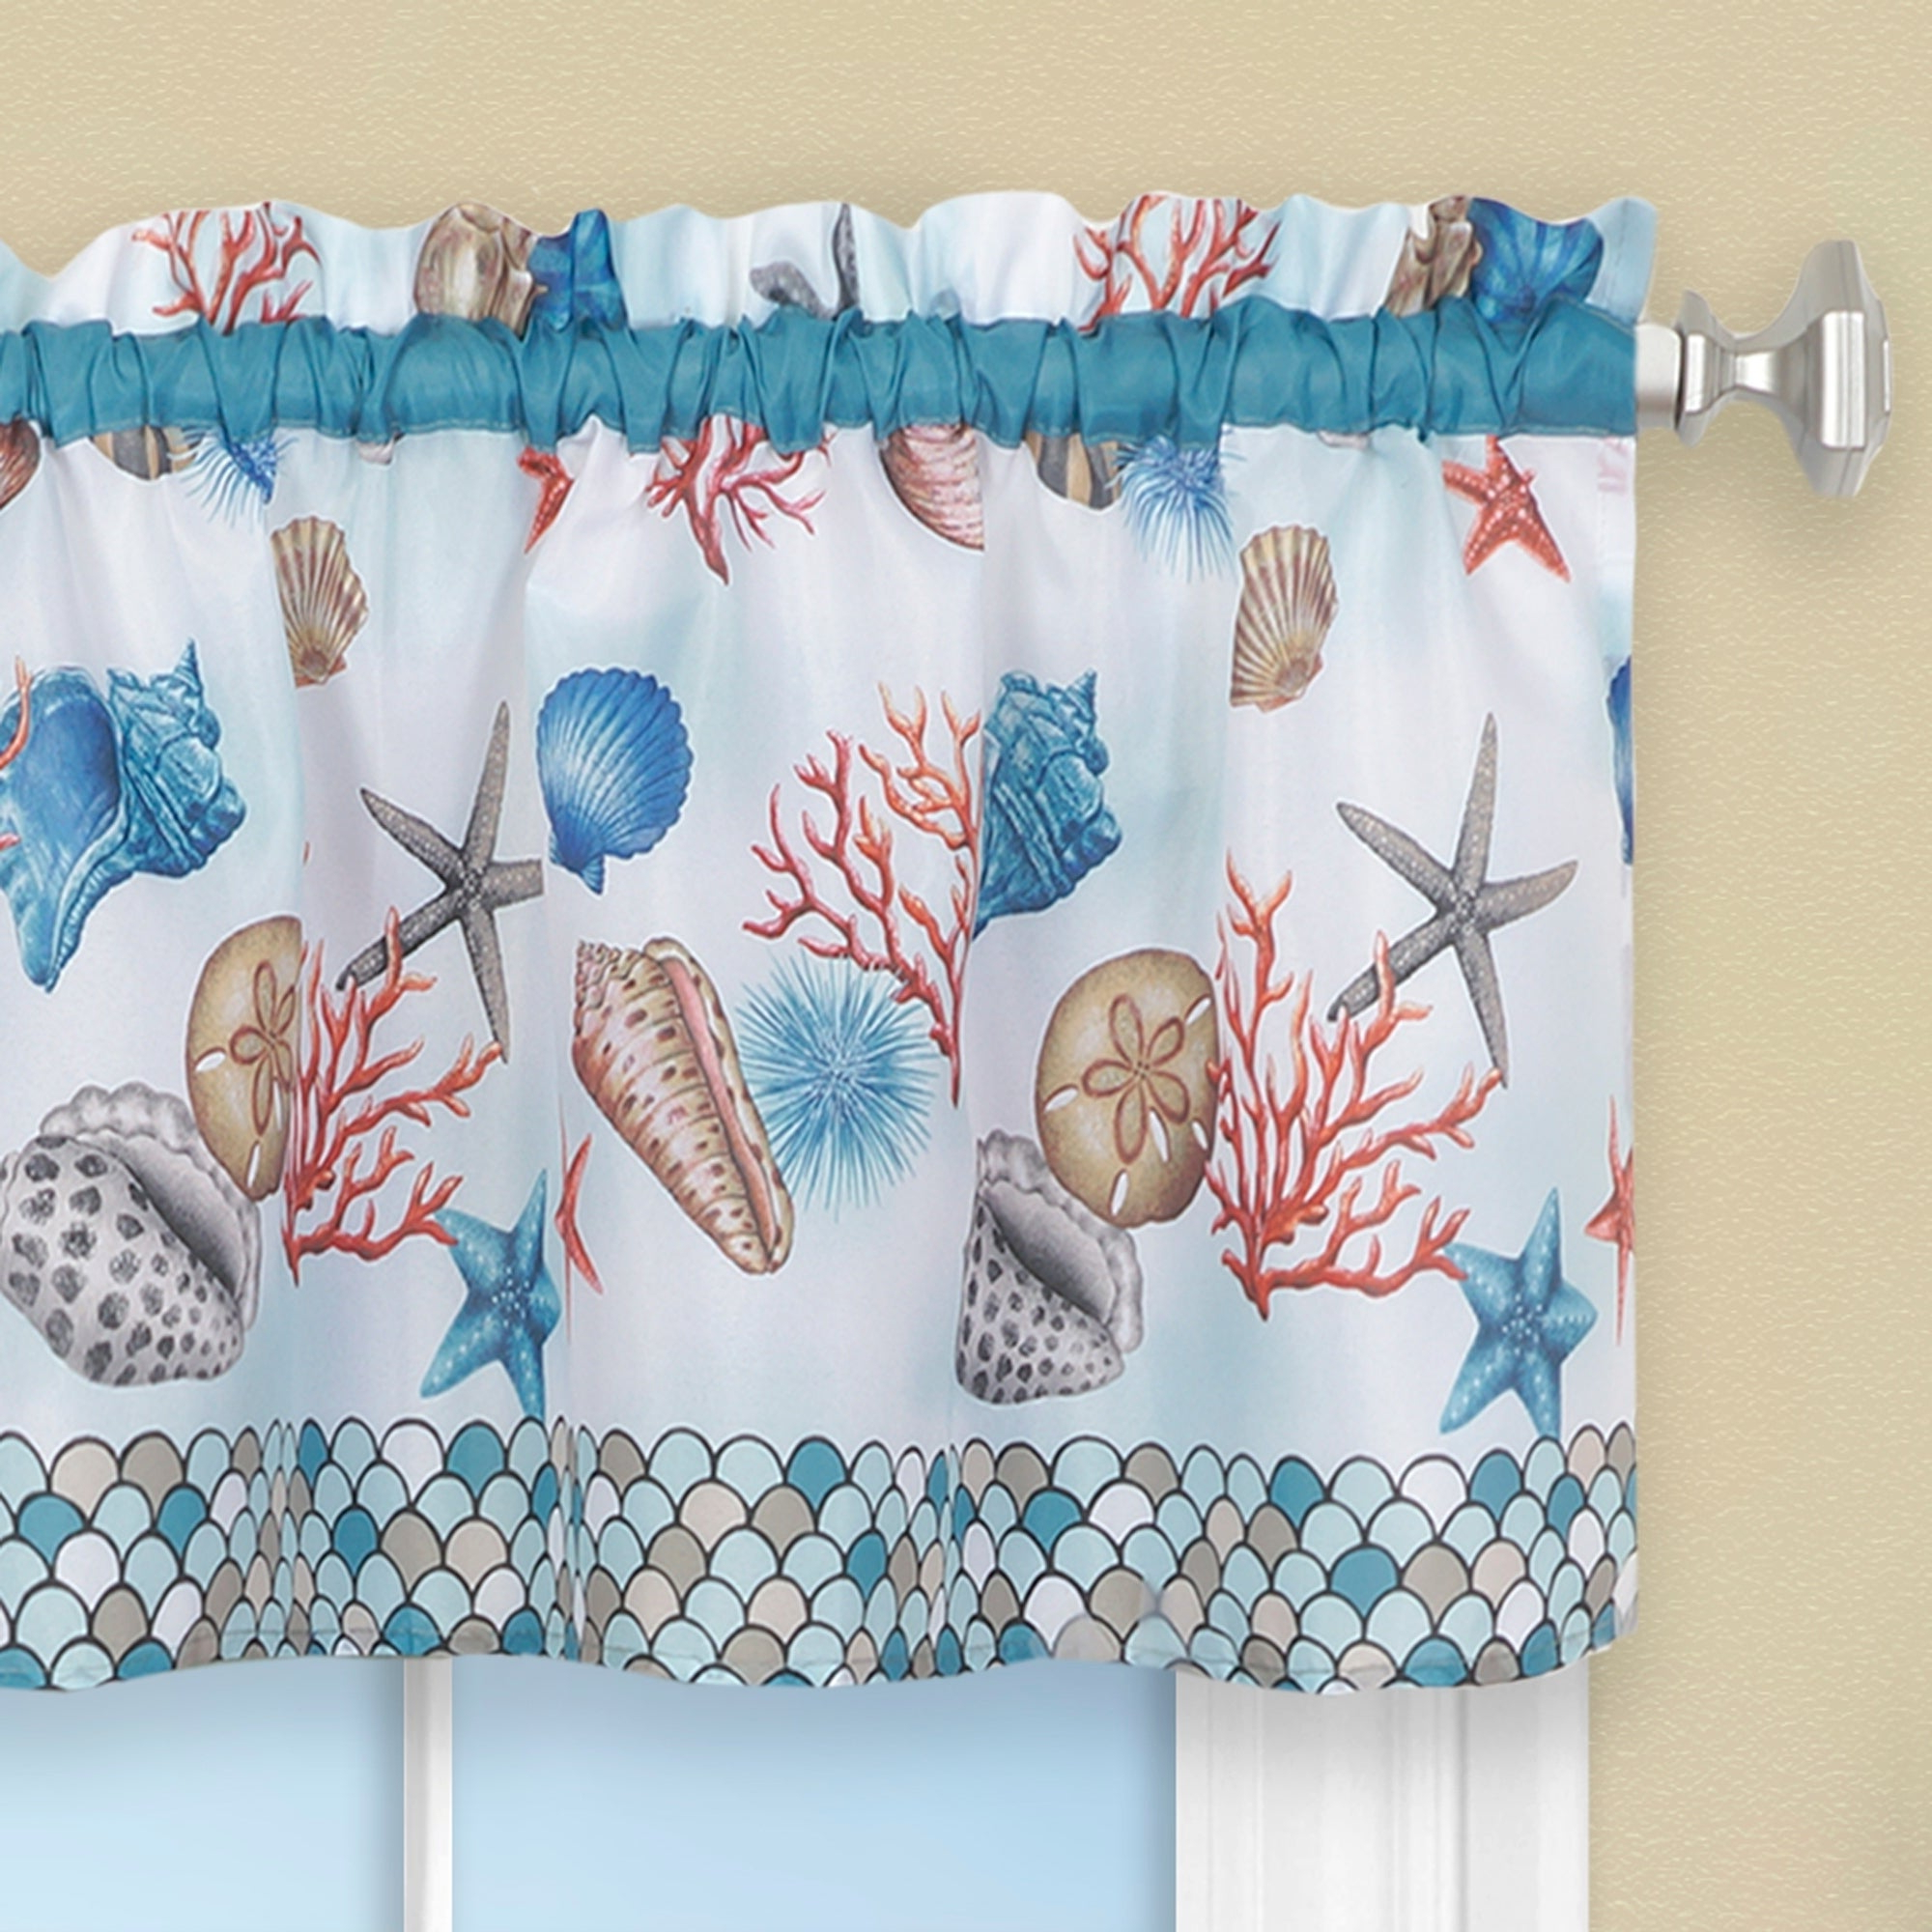 Coastal Tier And Valance Window Curtain Sets Intended For Current Coastal Tier And Valance Window Curtain Set – Blue (View 2 of 20)